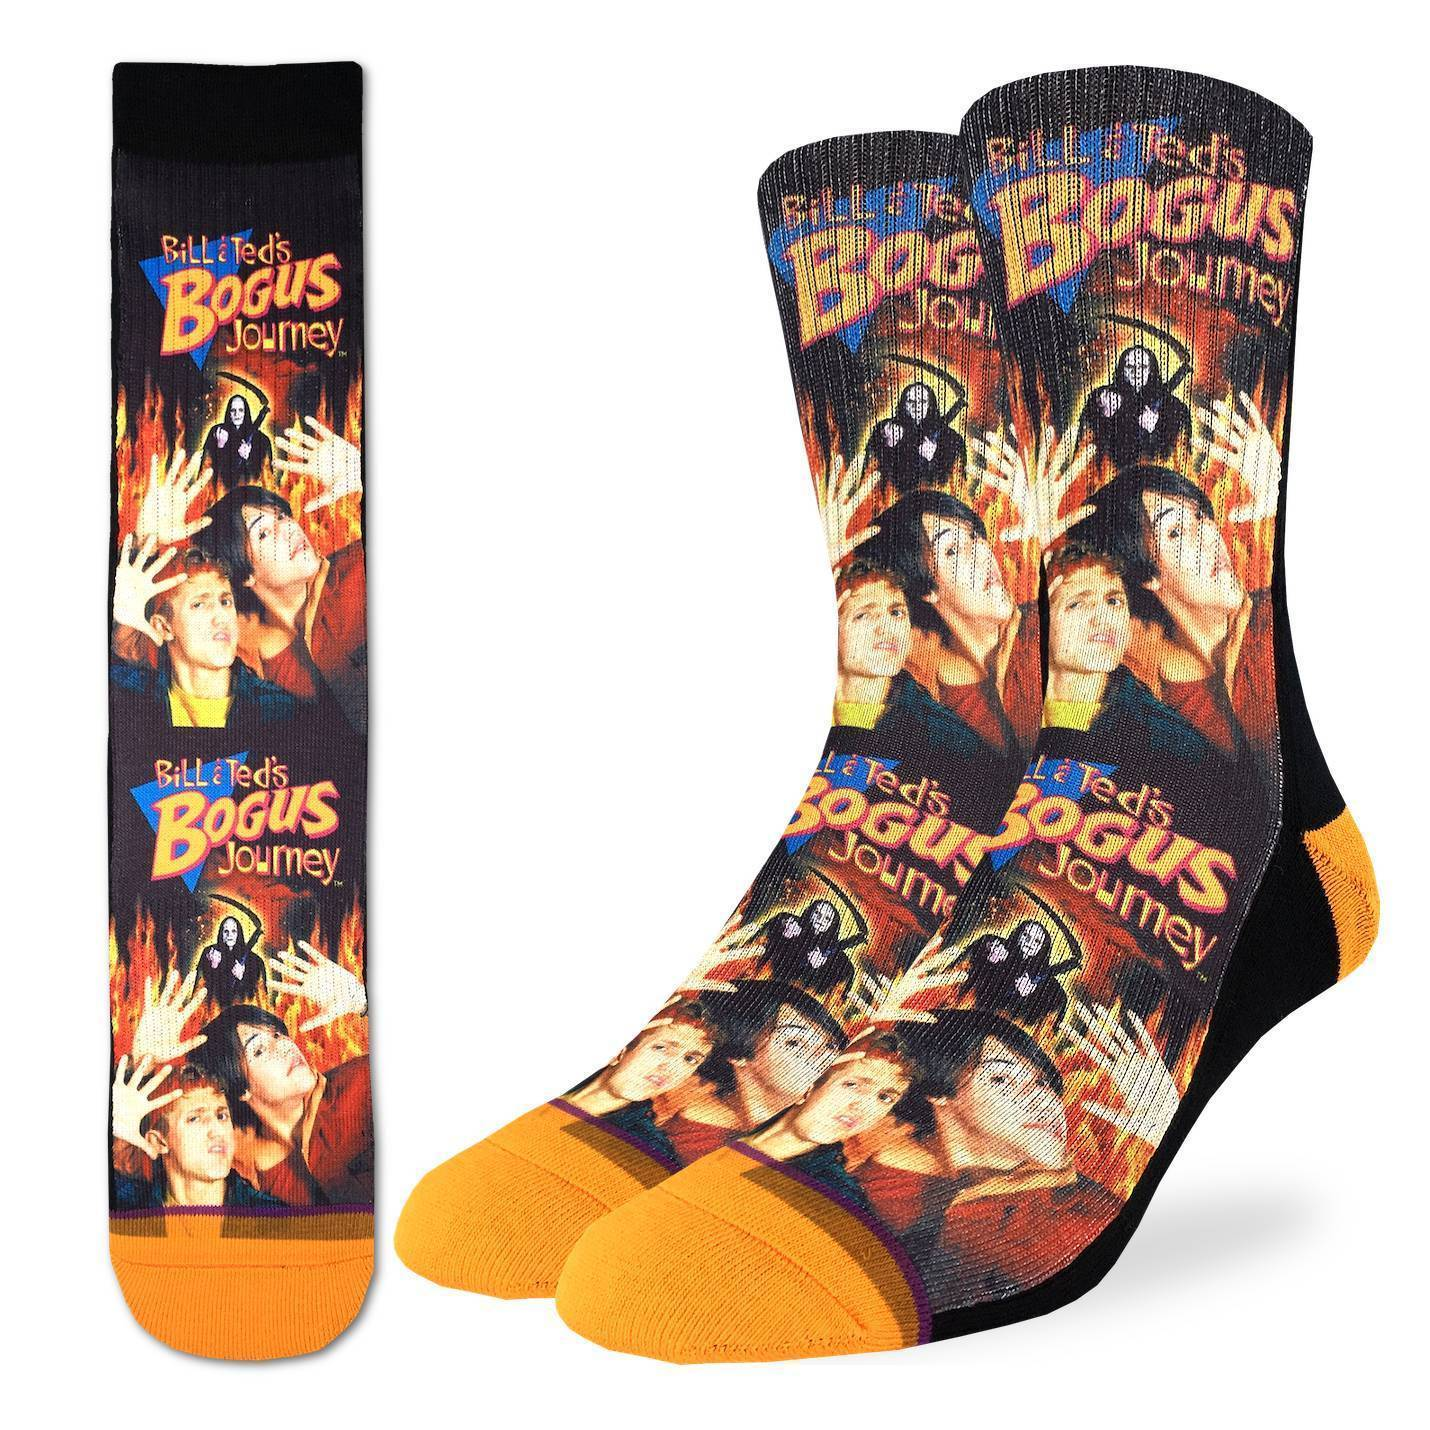 Men's Bill & Ted's Bogus Journey Socks - Good Luck Sock